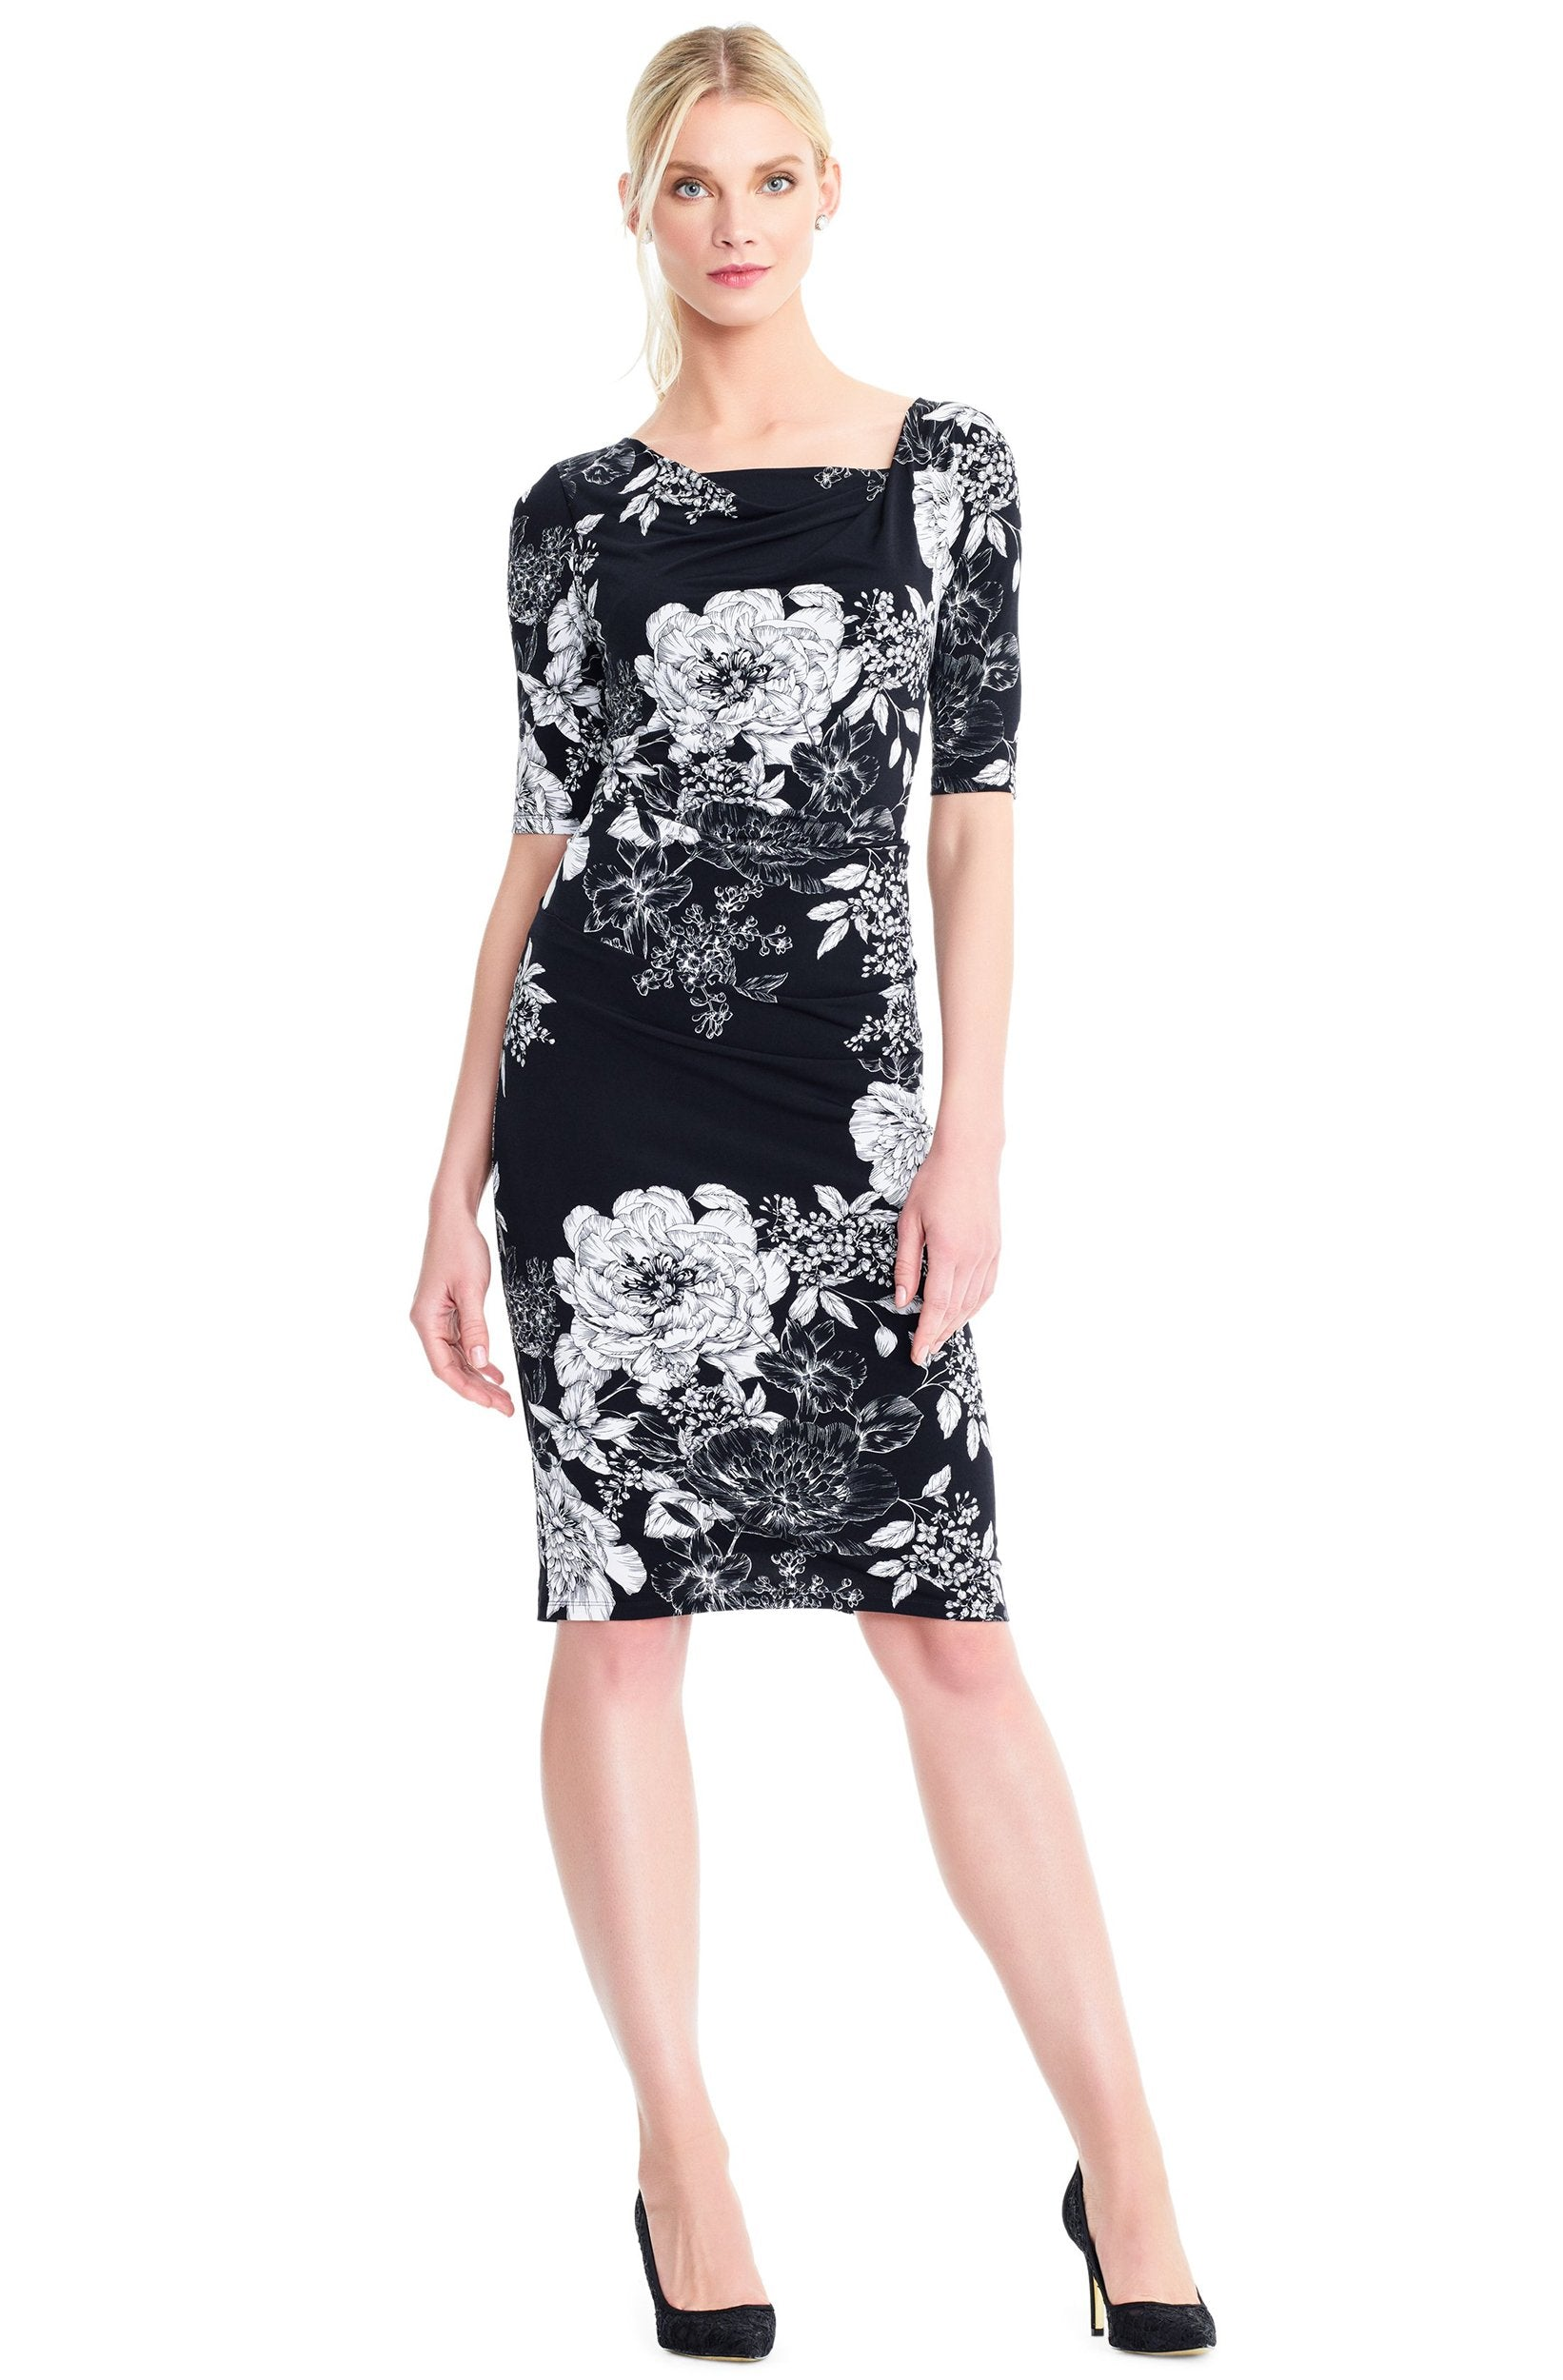 Adrianna Papell - AP1D102629 Floral Square Cocktail Dress In Black and White